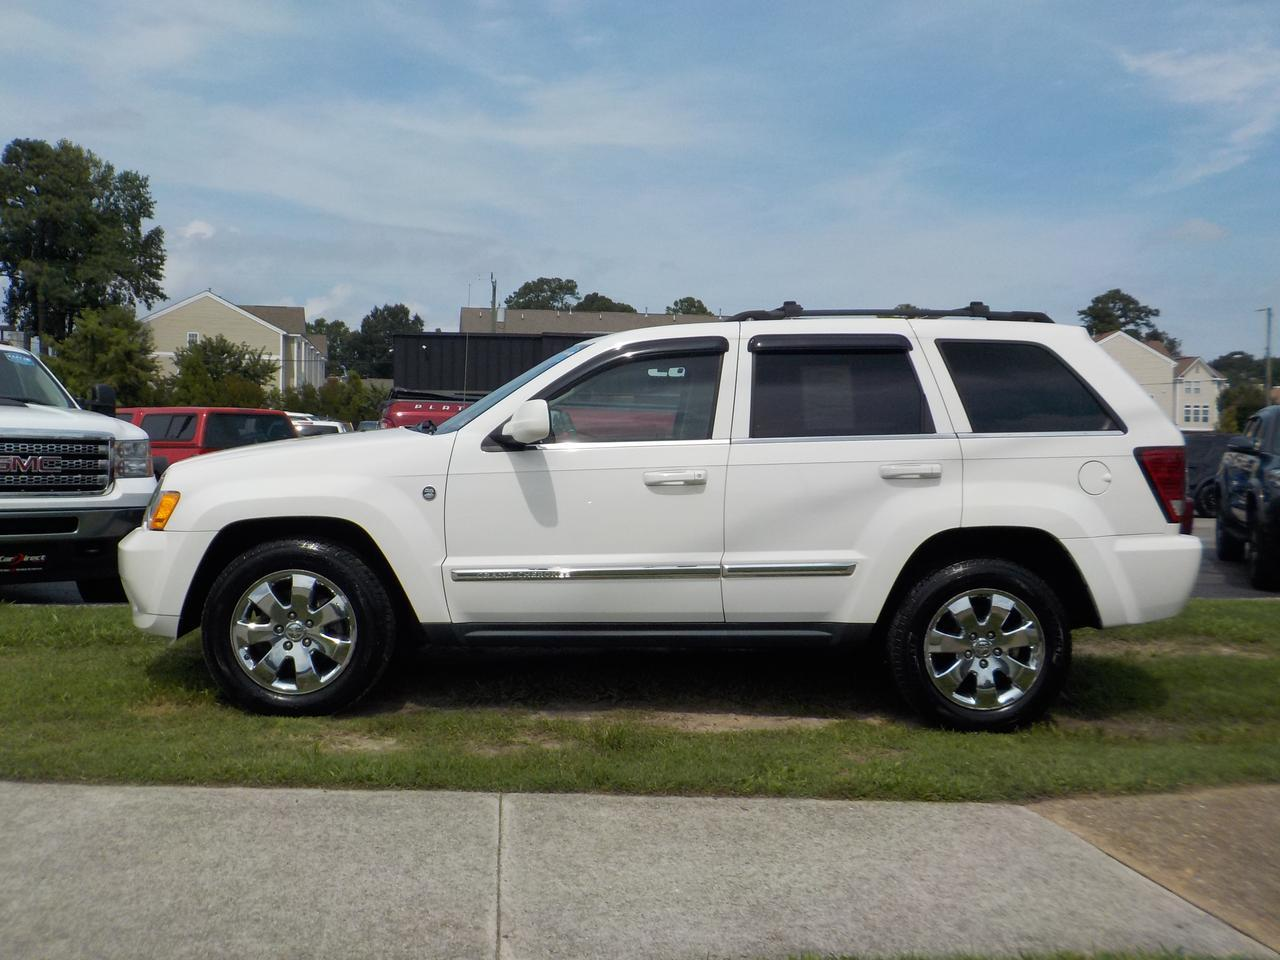 2009 JEEP GRAND CHEROKEE LIMITED, 4X4, CHROME WHEELS, NAVIGATION SYSTEM, ROOF RACKS, BOSTON SOUND SYSTEM! Virginia Beach VA